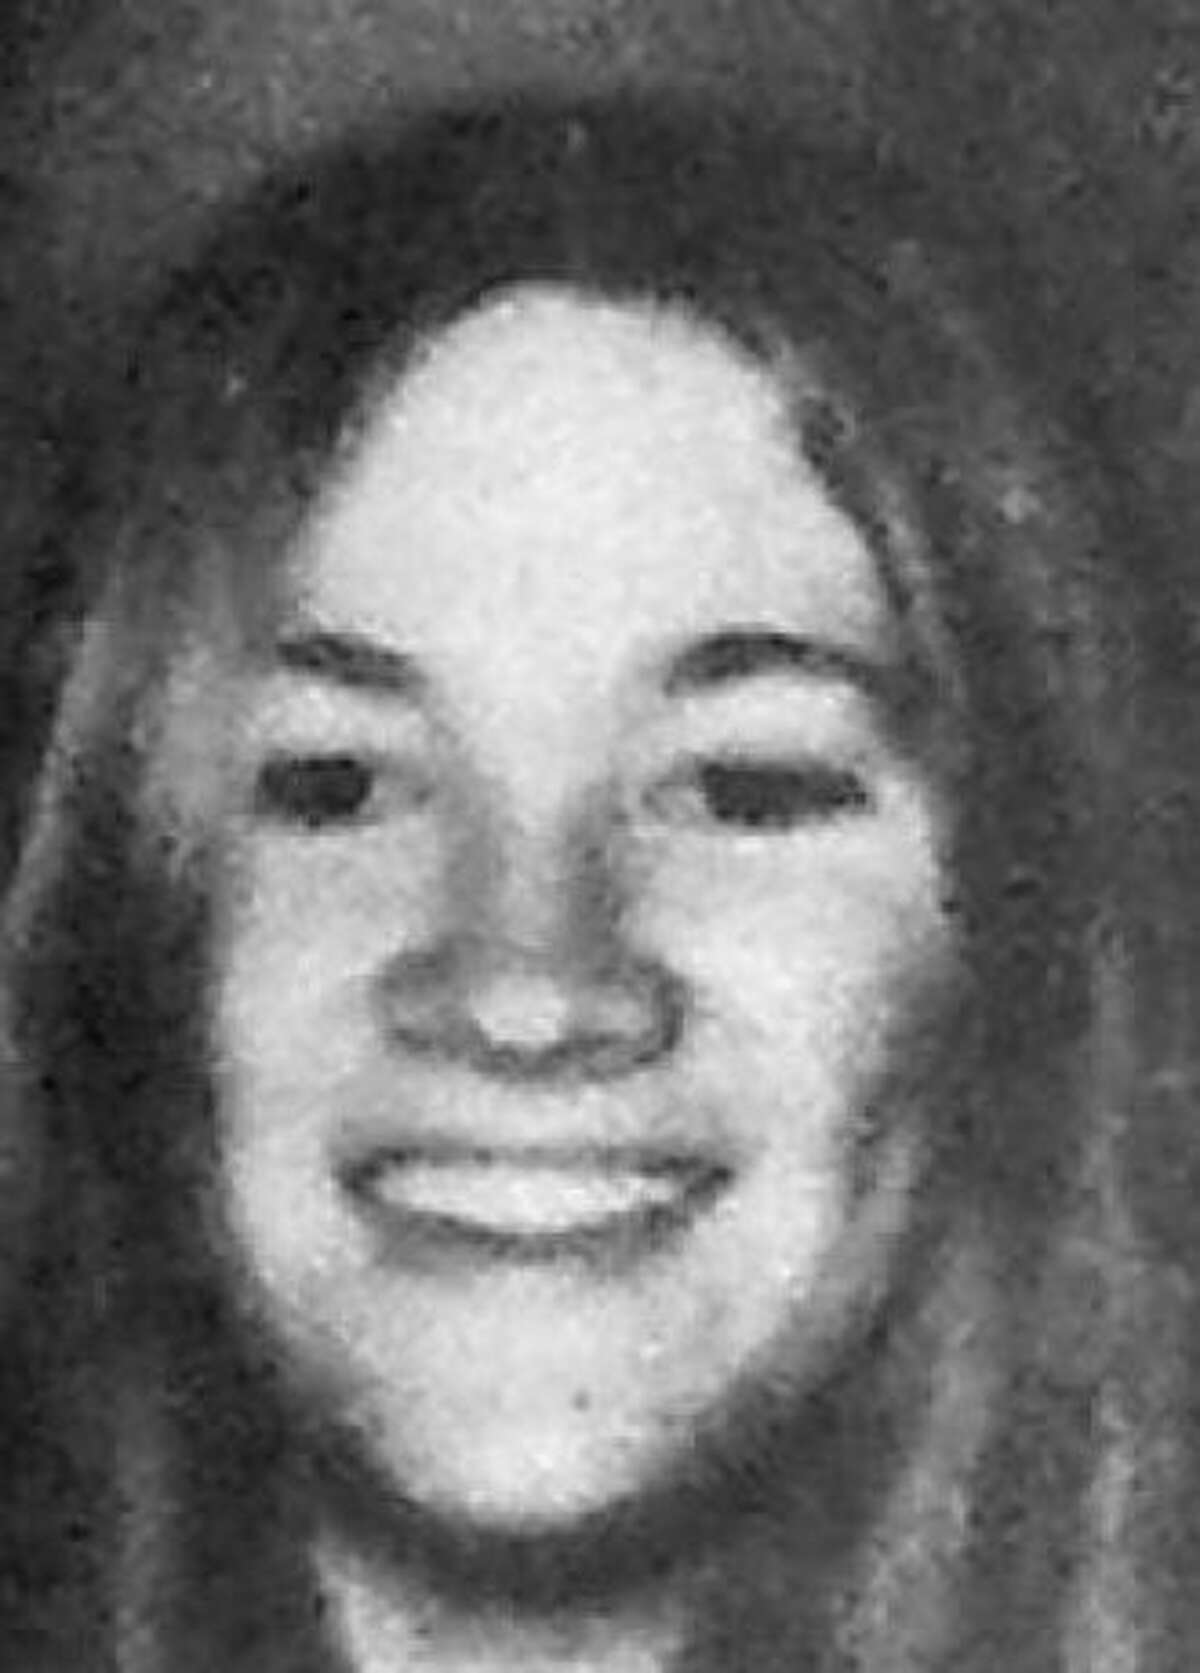 Kim Wendy Allen (above), a 19-year-old student at Santa Rosa Junior College, was one of seven women slain while hitchhiking along highways in and around Santa Rosa in the early 1970s. The spree began in February of 1972 when Yvonne Weber and Maureen Sterling, both 13, were thumbing rides on Guerneville Road. The pair disappeared and their bones were found 10 months later in the hills outside Santa Rosa. Over the course of the next 18 months, six more women went missing in the area, with five of their bodies found thrown on the side of Northern California roads or pitched down steep embankments. One victim was never found, but is presumed dead.Though the causes of death in the cases were different -- two were strangled, one was bludgeoned, one was poisoned -- each of the women was last seen hitchhiking along deserted highways. A number of suspects were investigated, including the Zodiac Killer and serial killer Ted Bundy, but police never made any arrests.